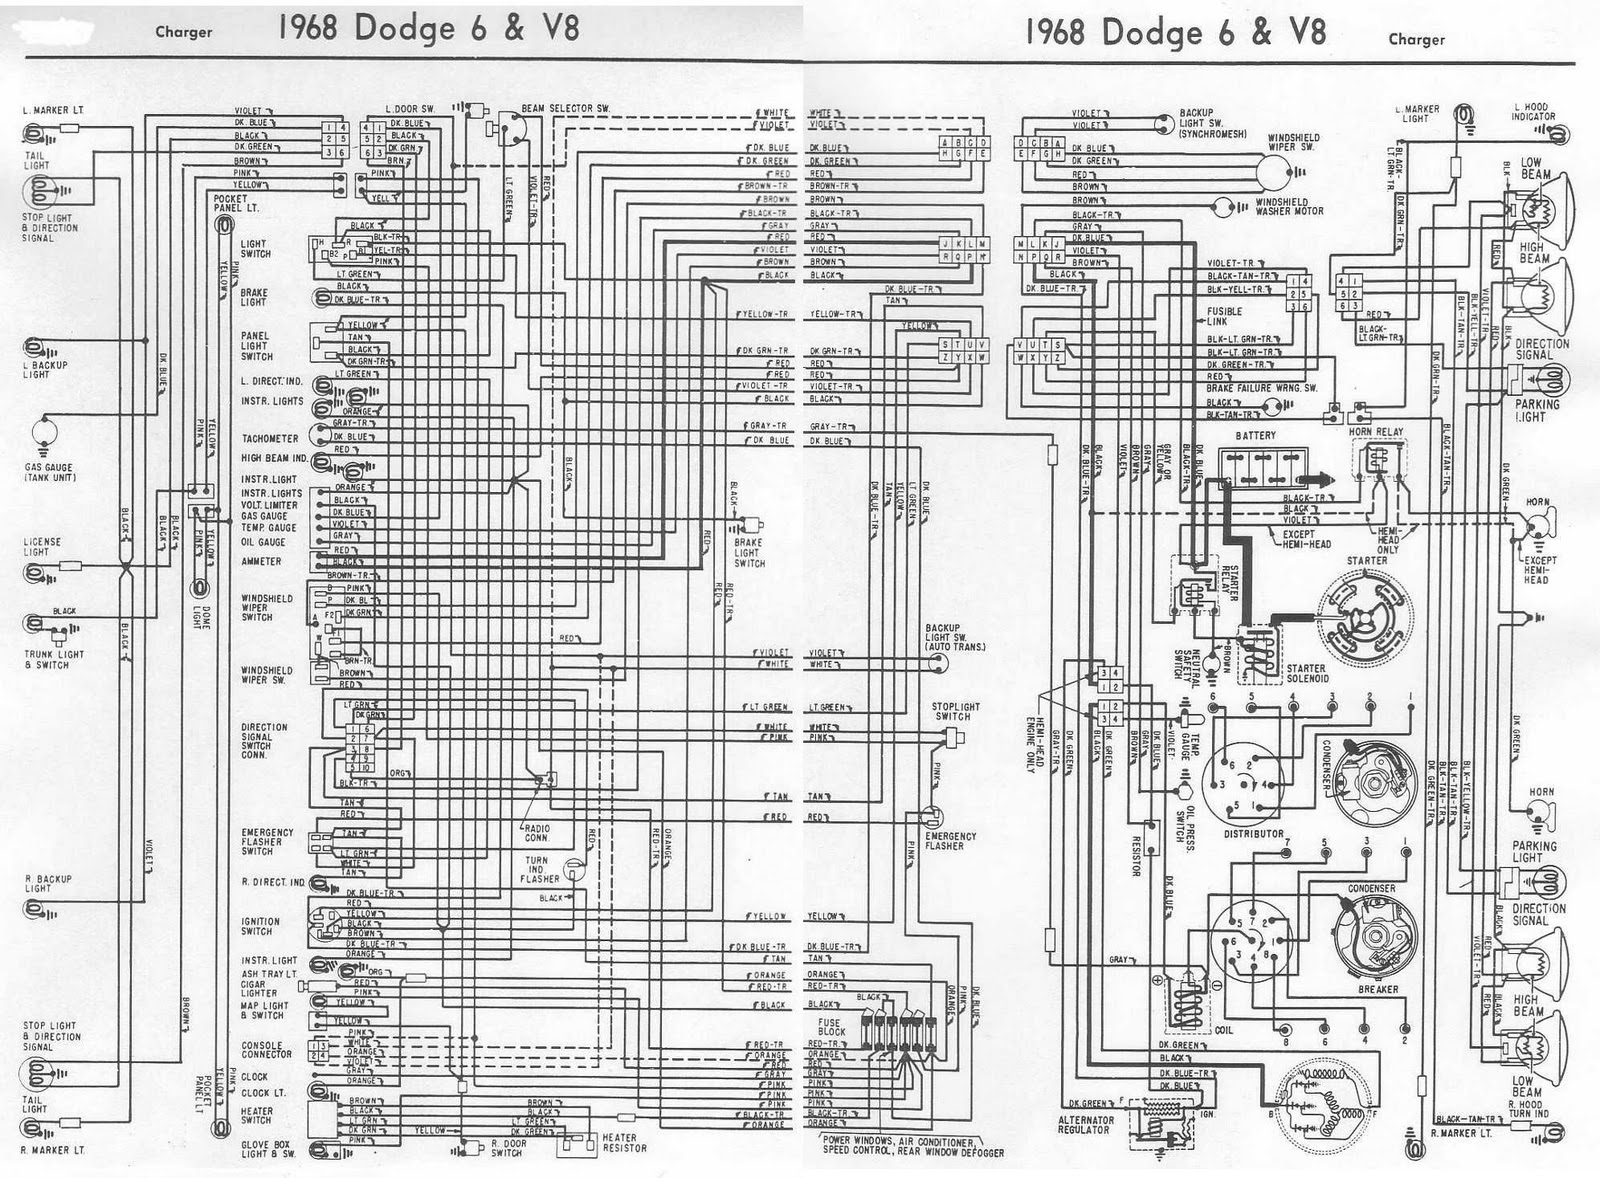 93 deville wiring diagram wiring diagram93 deville wiring diagram wiring diagrams68 cadillac wiring harness data wiring diagram68 cadillac wiring harness wiring